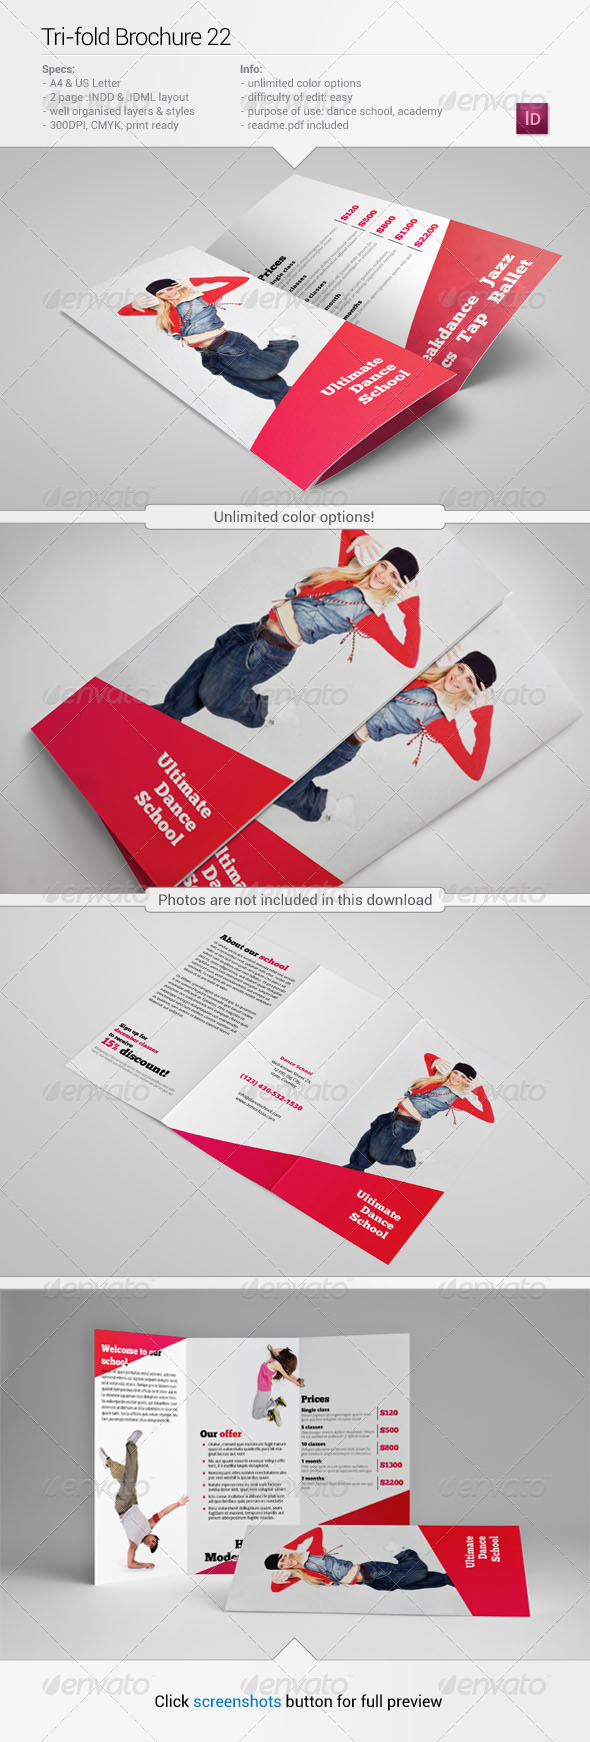 GraphicRiver Tri-Fold Brochure 22 5992153